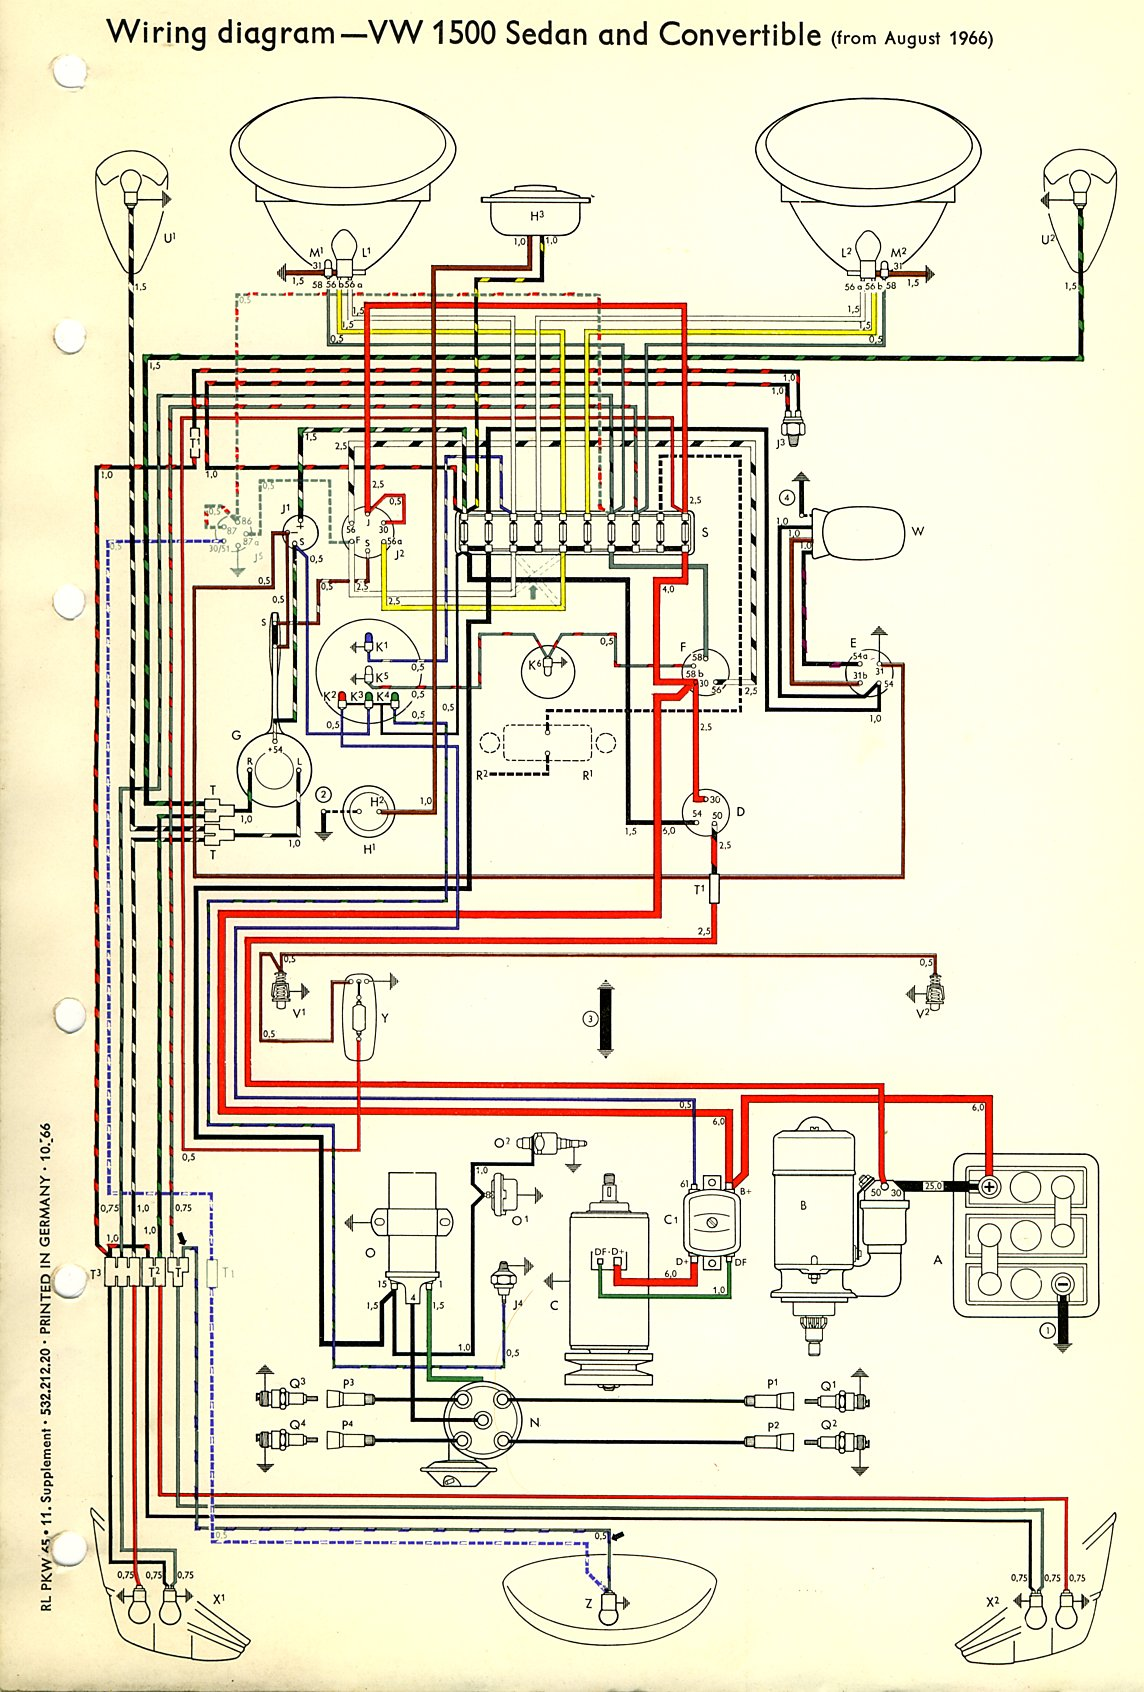 hight resolution of thesamba com type 1 wiring diagrams 1973 vw beetle voltage regulator wiring diagram 1973 vw beetle wiring diagram